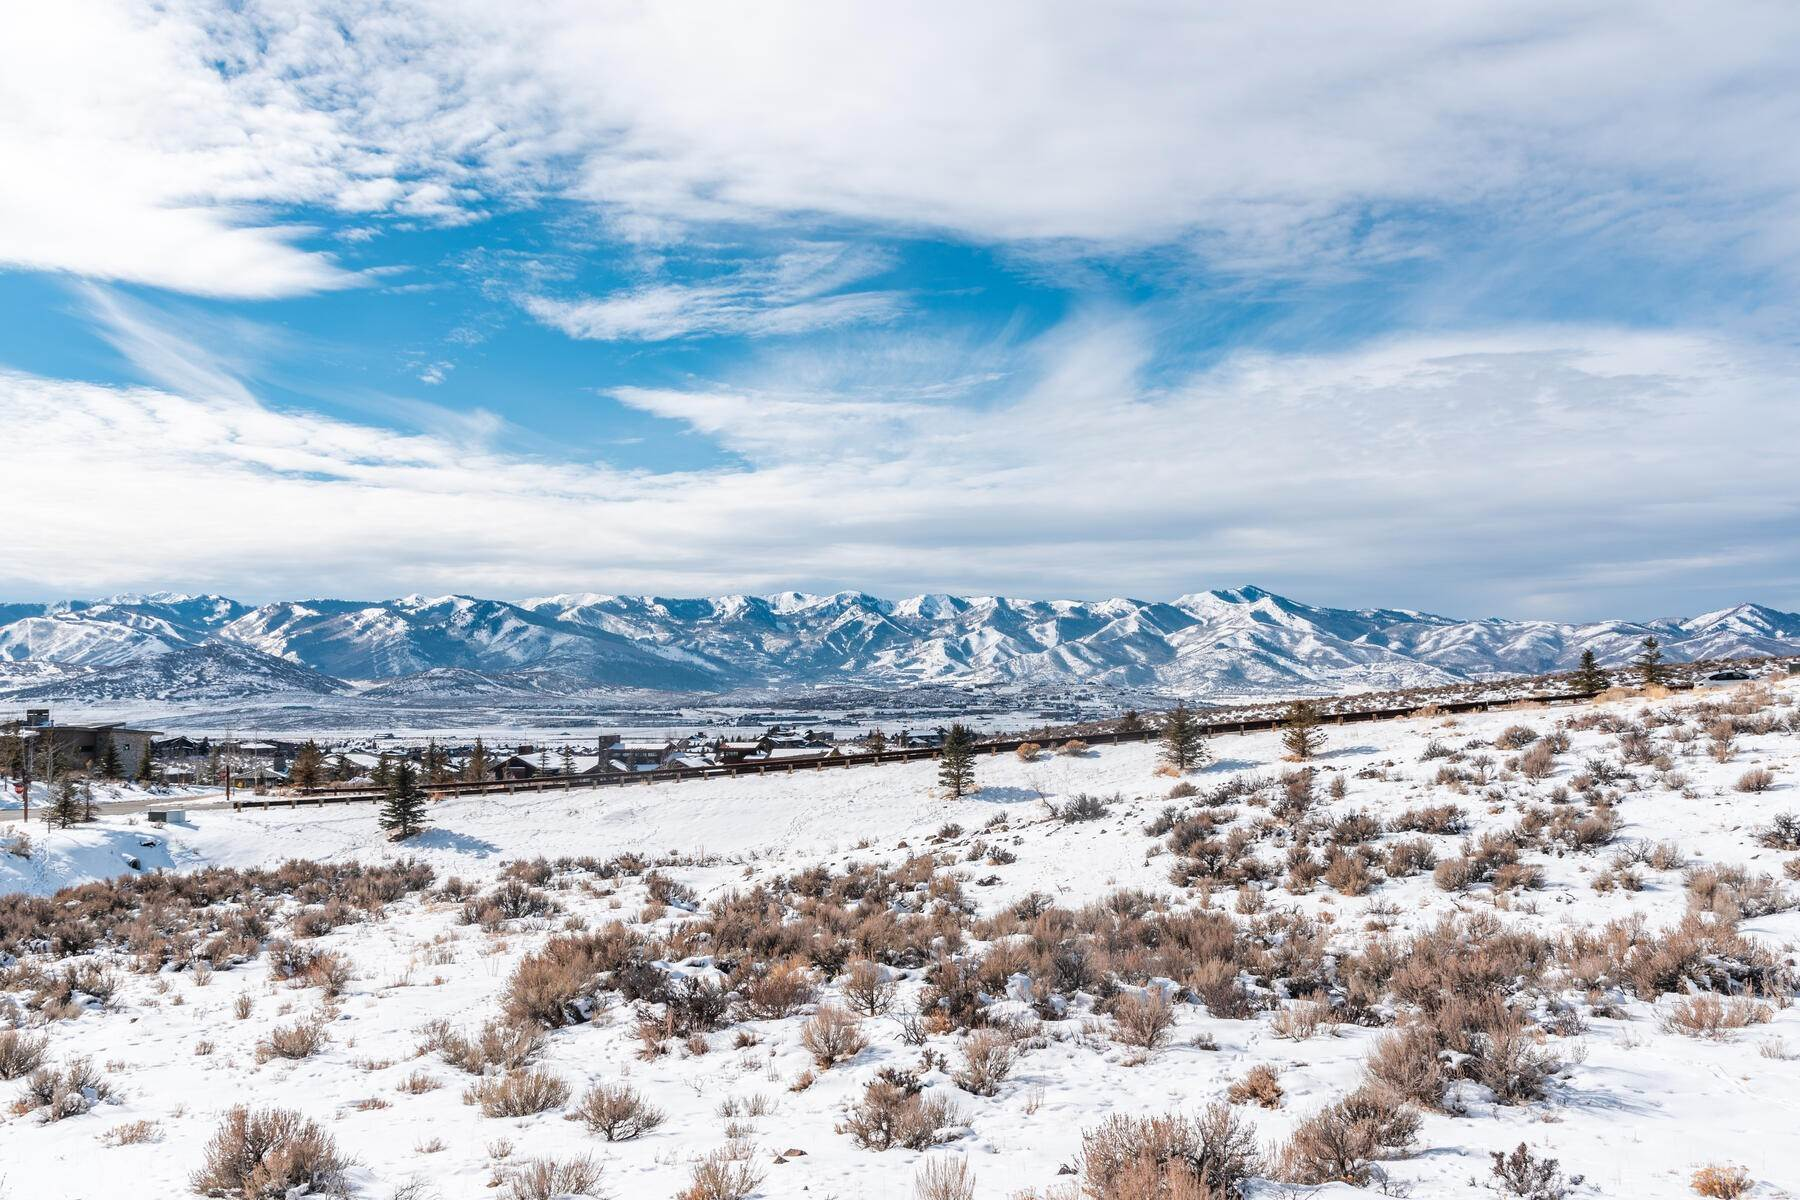 Property for Sale at 5 Star Lot with Added Incentives 7406 N Ranch Club Trail, Lot #27 Park City, Utah 84098 United States